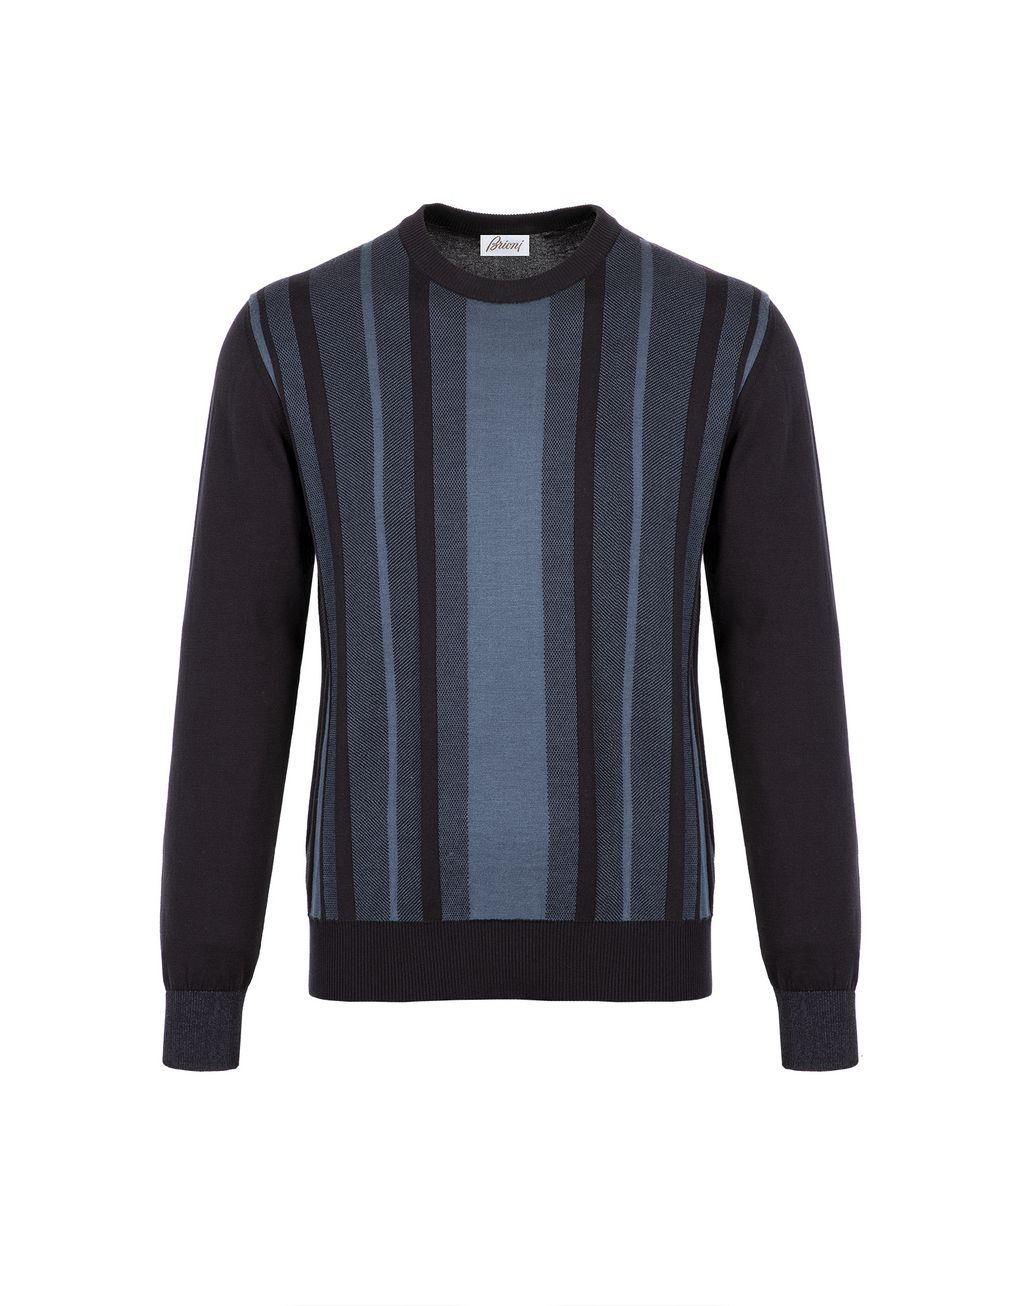 BRIONI Navy-Blue Cotton and Silk Striped Sweater with Two-Tone Trim Knitwear [*** pickupInStoreShippingNotGuaranteed_info ***] f